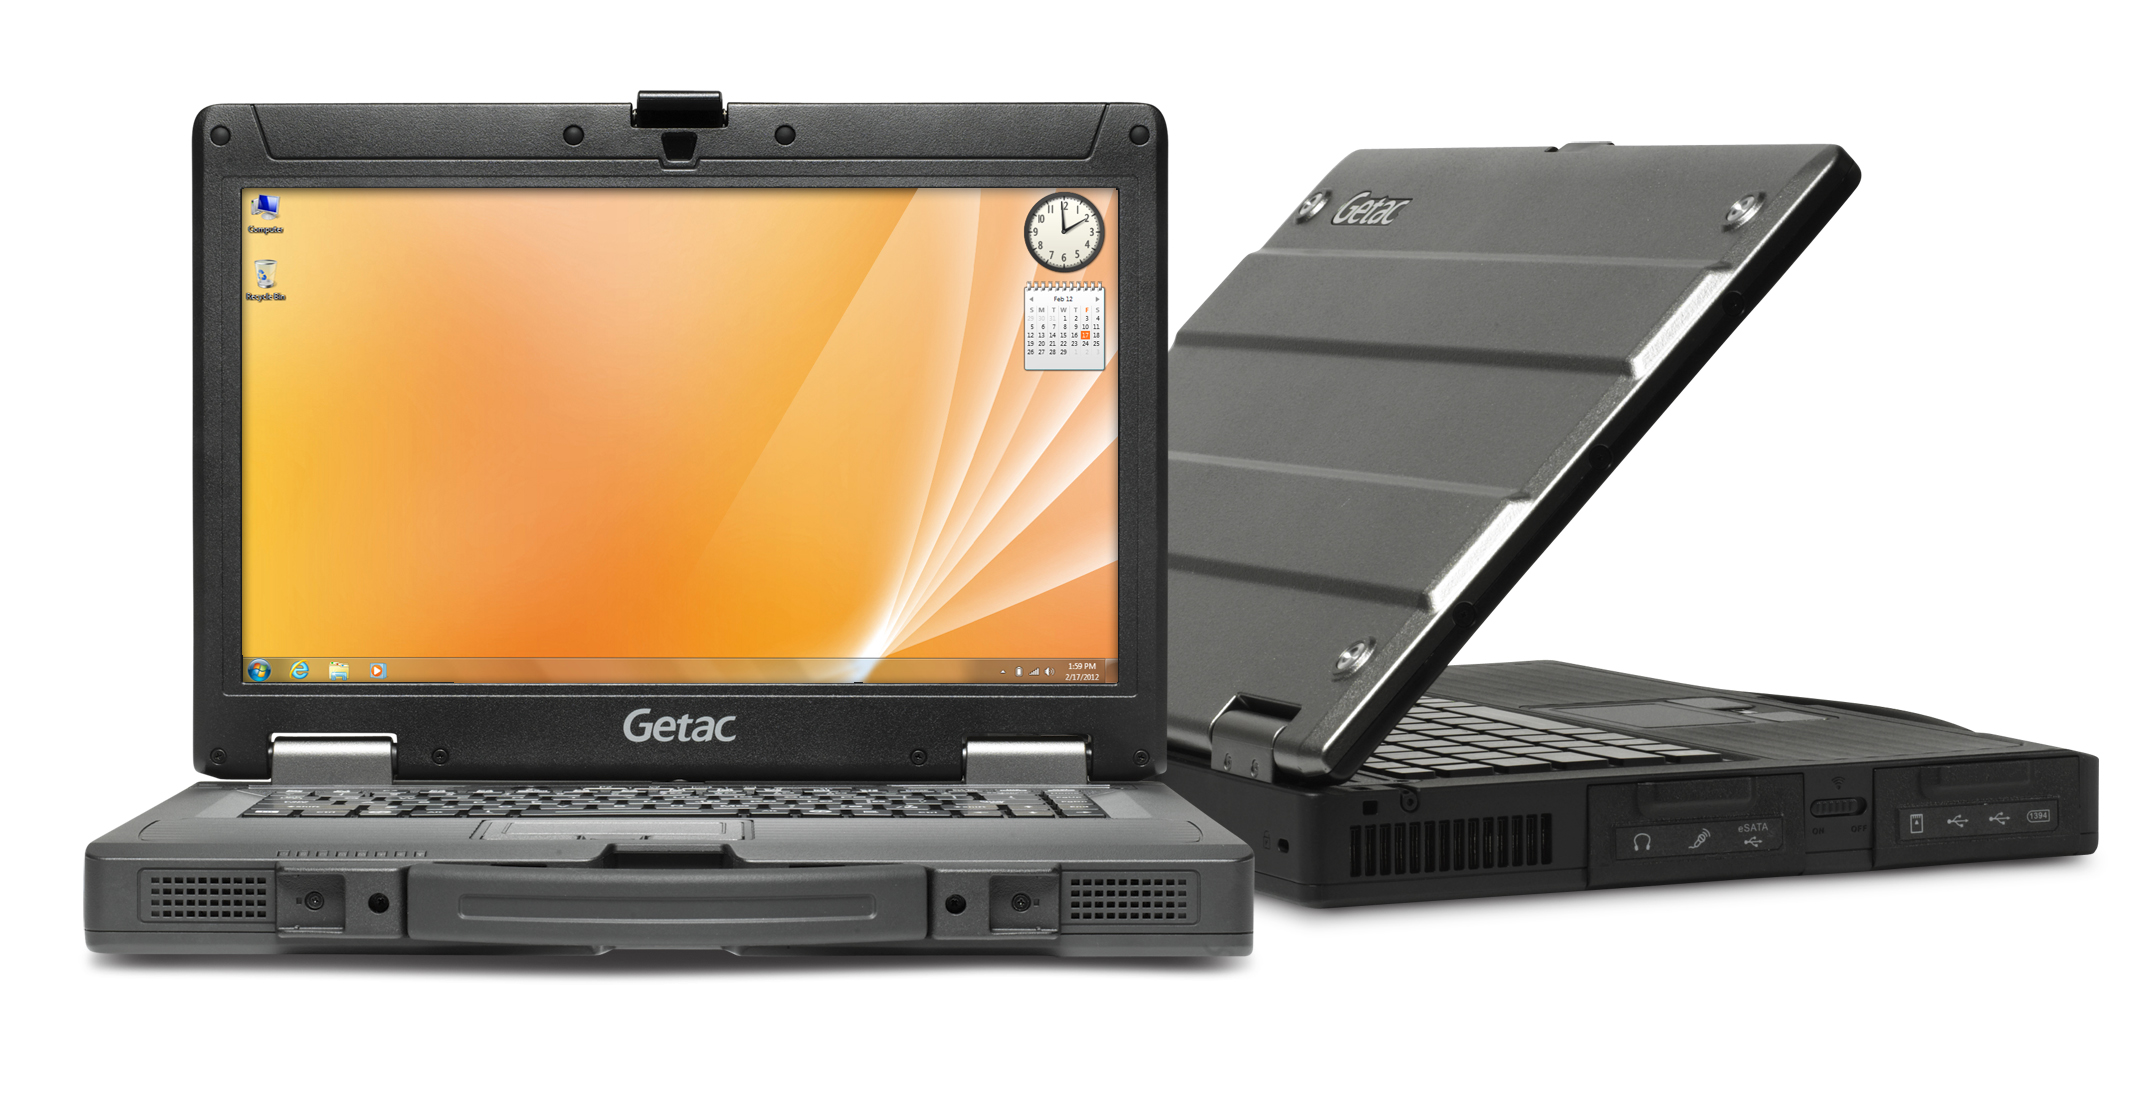 Getac Announces Upgrades For S400 Semi Rugged Laptop Computer